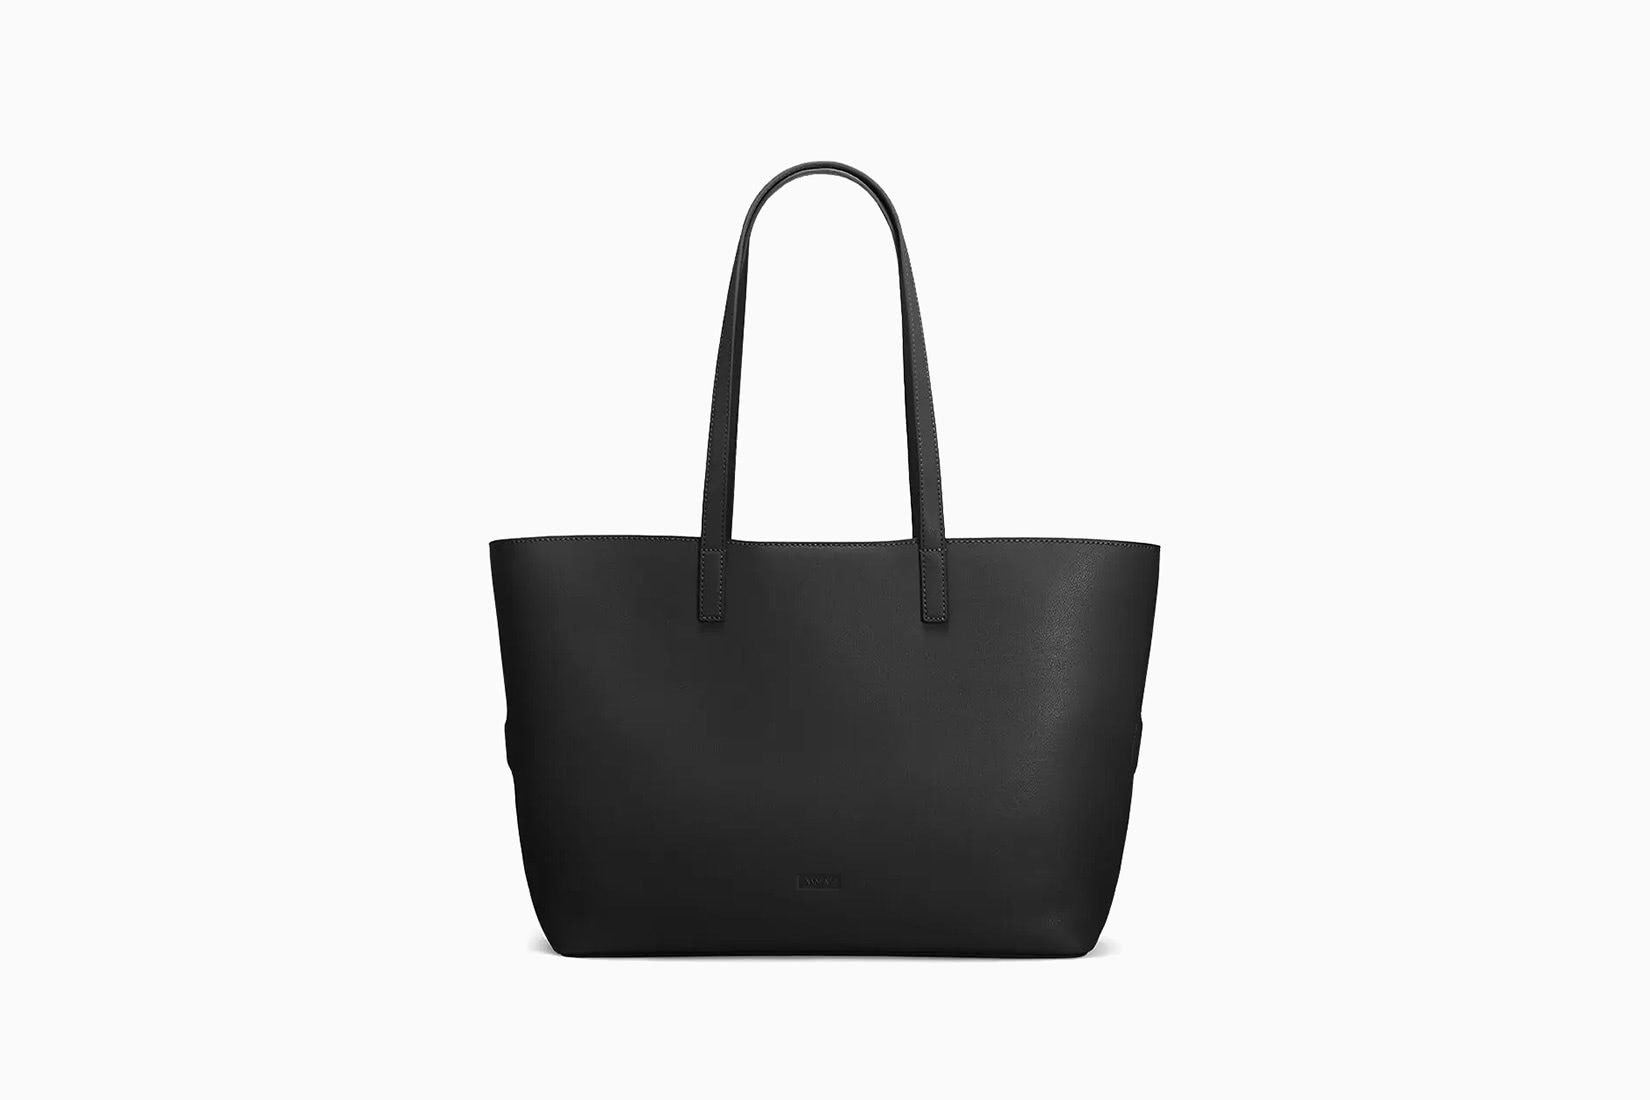 best travel tote bags women away latitude review - Luxe Digital